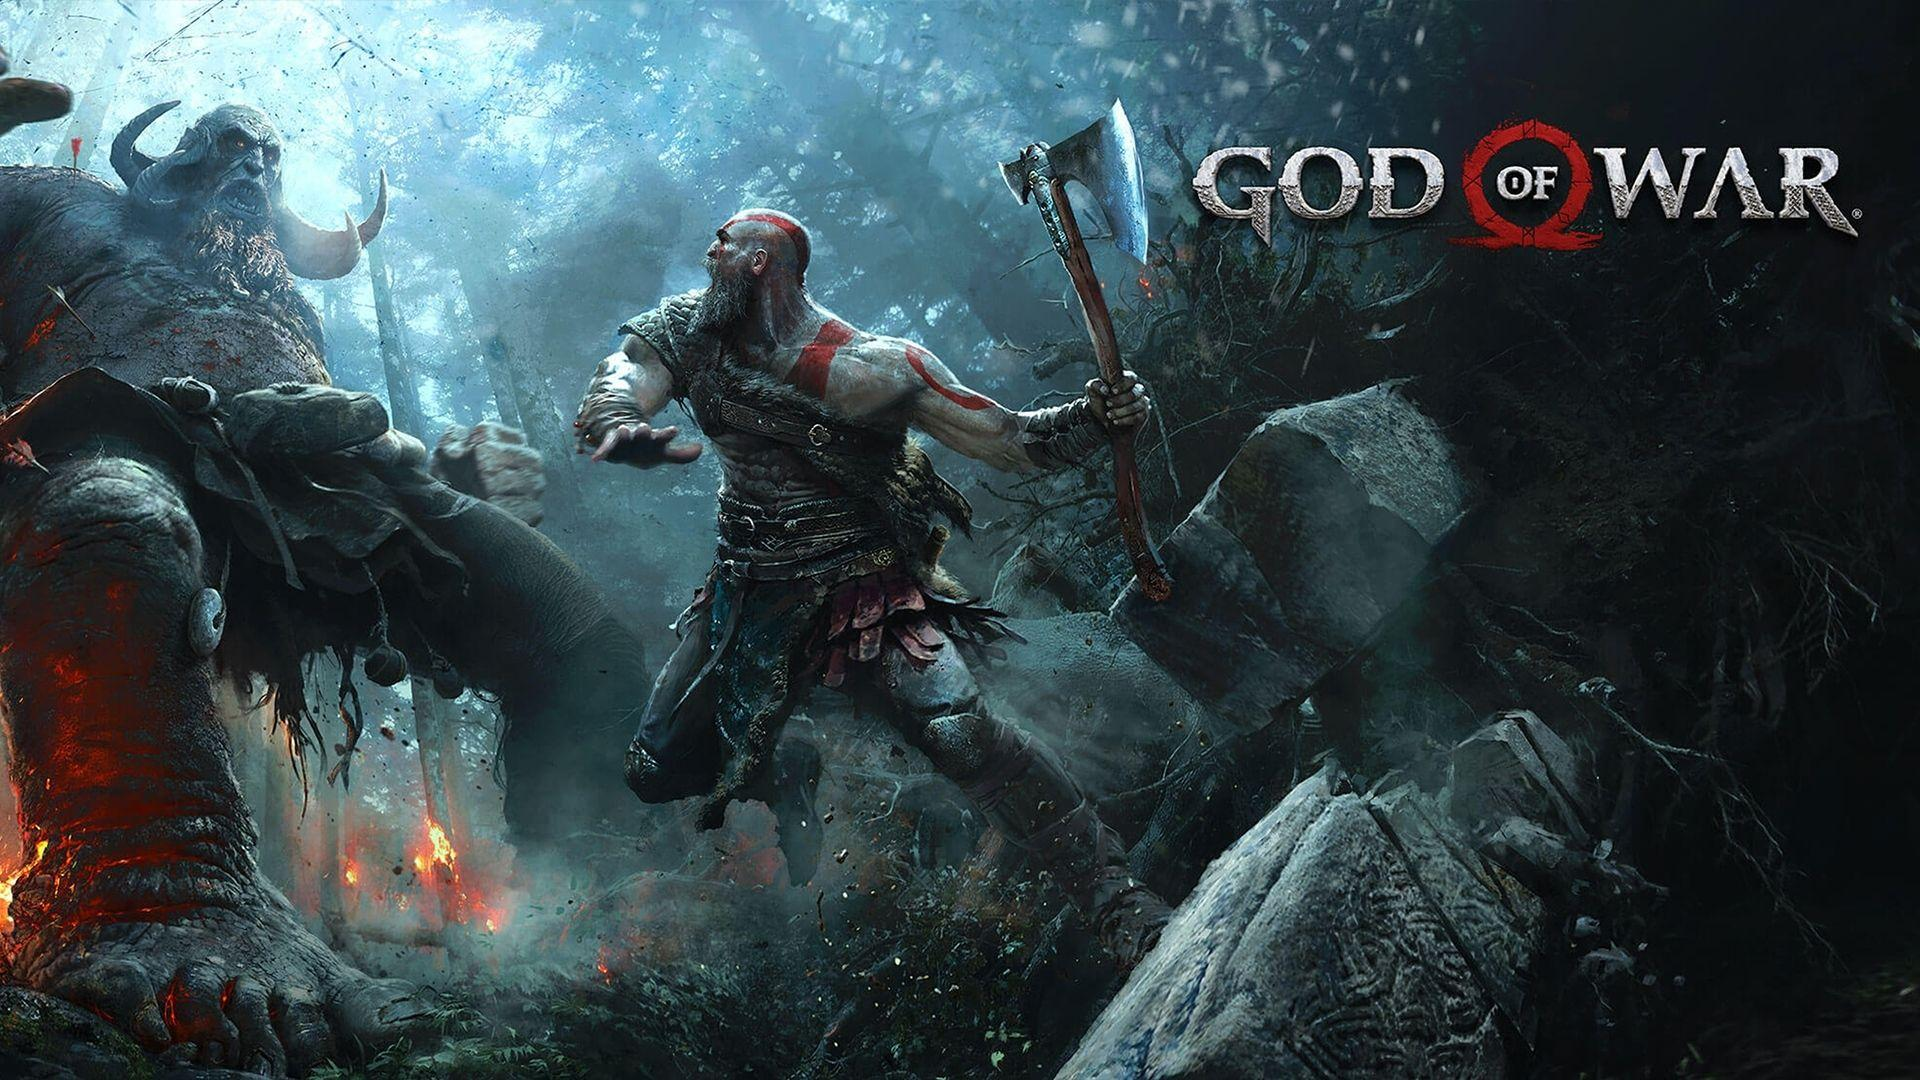 God Of War 4 Artwork 4k Hd Wallpaper 1400x1050